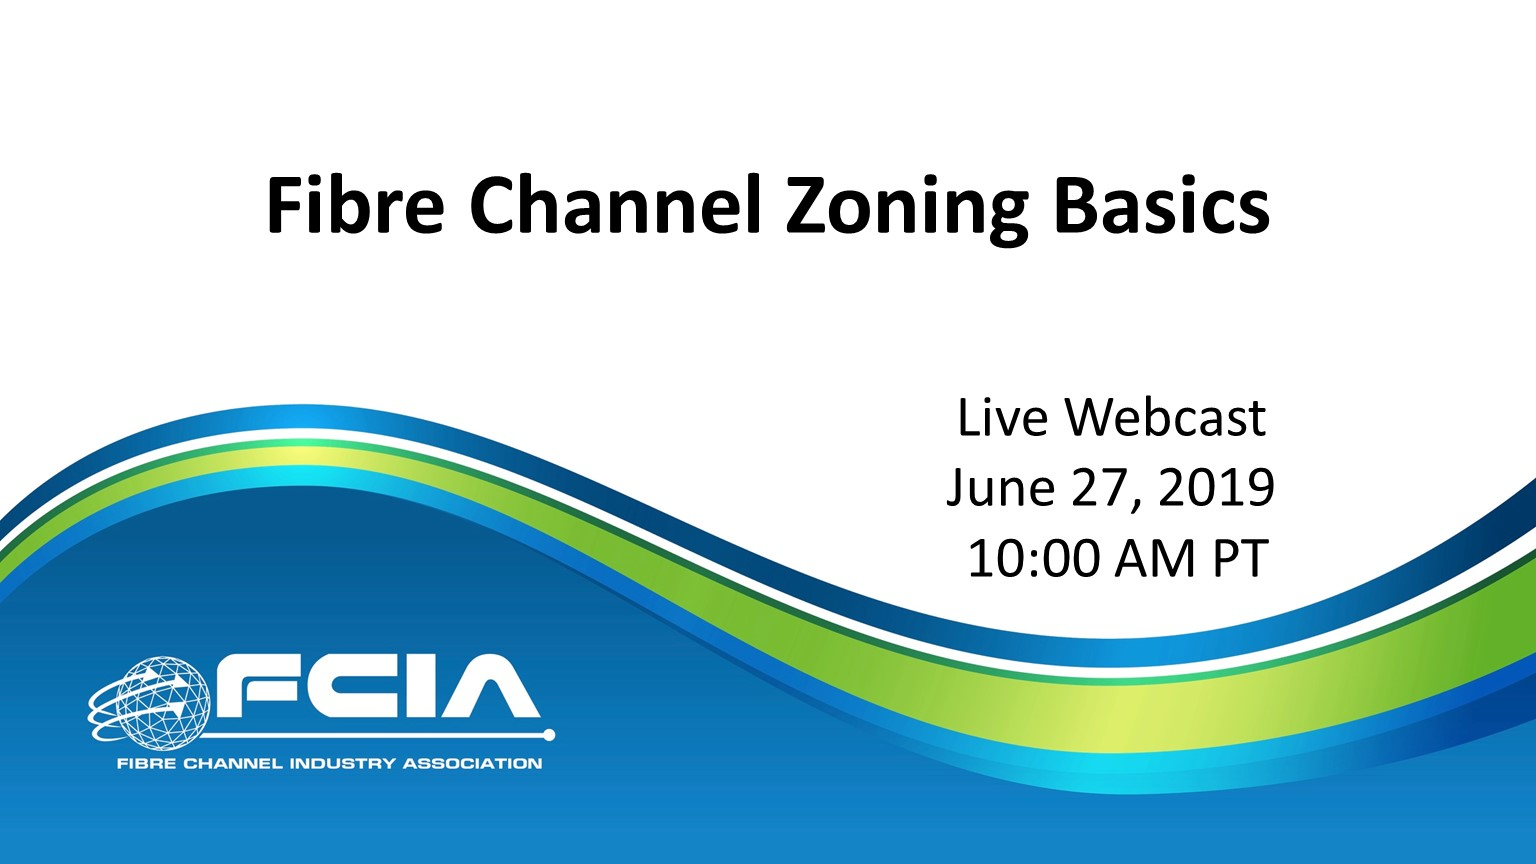 Fibre Channel Zoning Basics